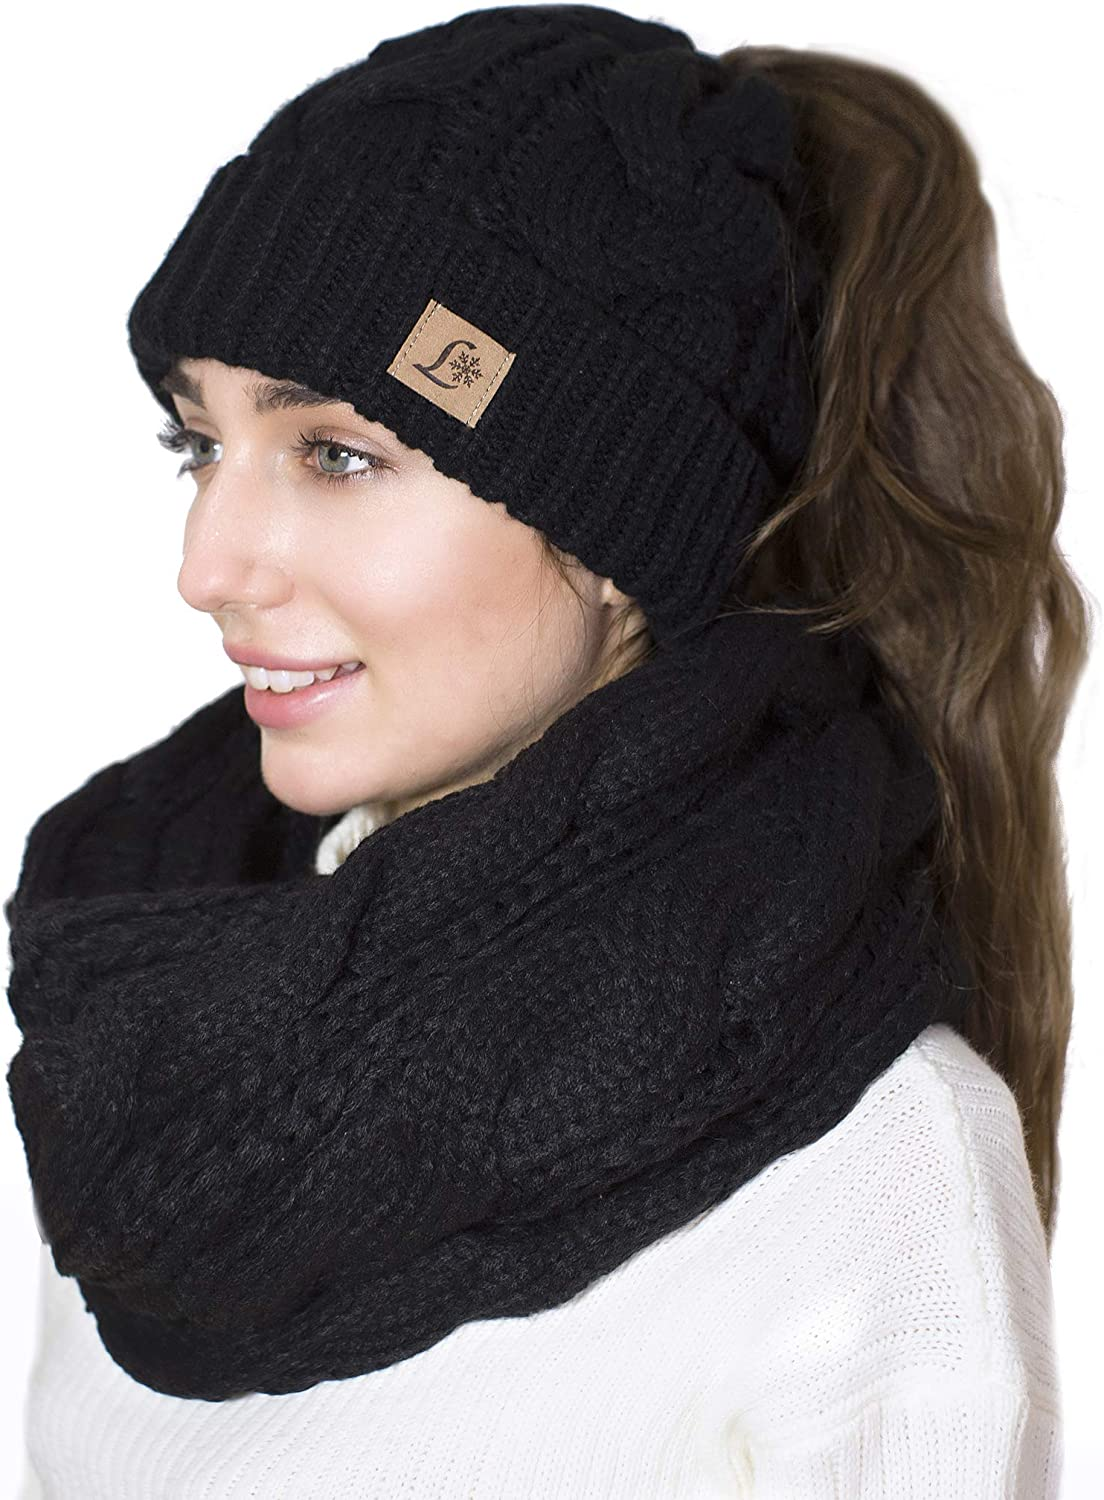 Gifts for her Hiking Skater Style Skiiing Messy Bun Hat Winter Wear Pony Tail Beanie Trailriding Snowboarding Hat Valentines Day